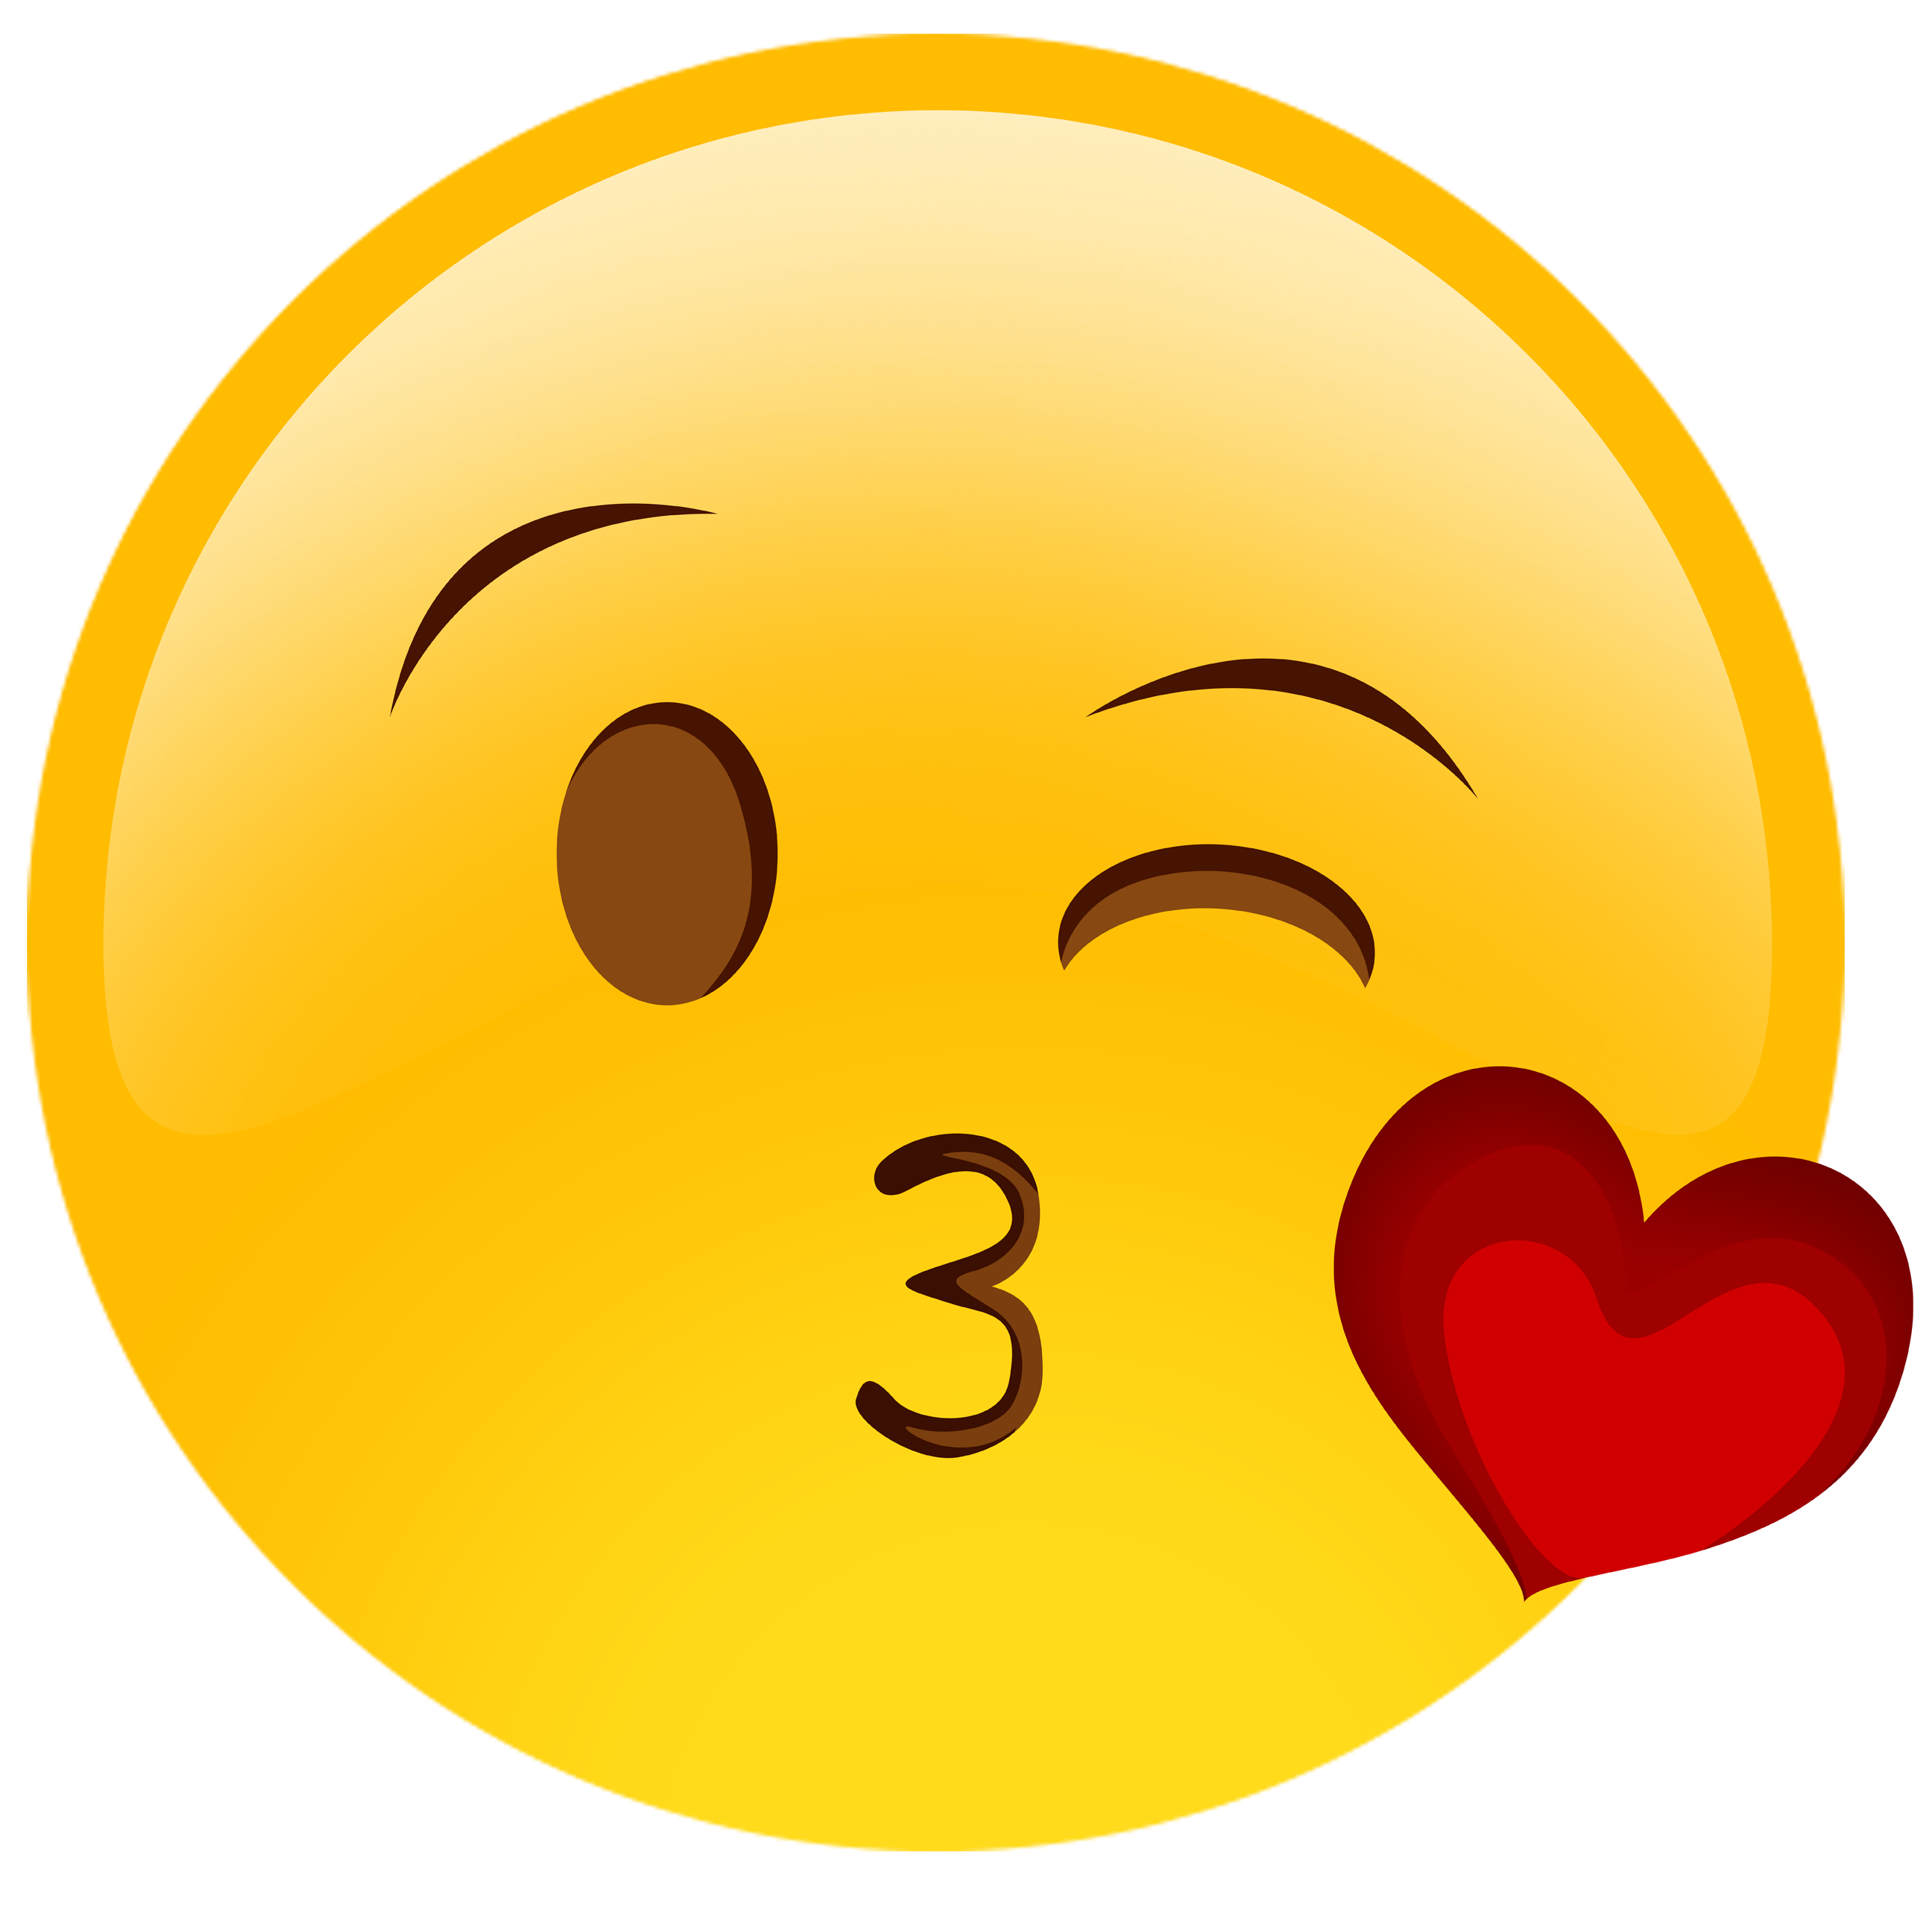 Some nice new for. Germany clipart emoji